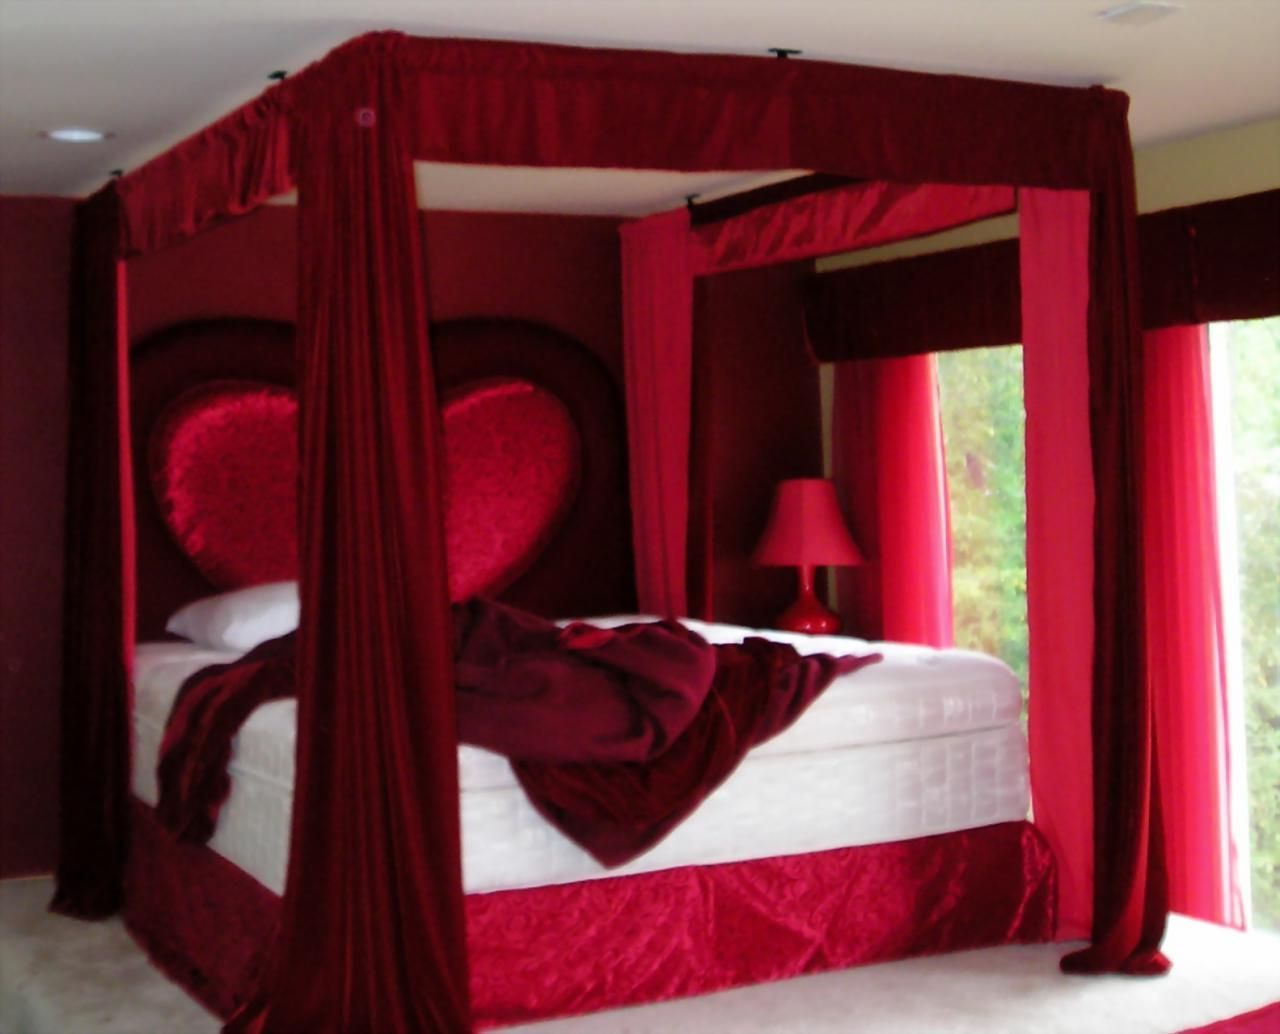 Bed Room, Lovable Bedroom Ideas For Couple With Fascinating Red Canopy  Above Stunning Glazing Window Interesting Headboard Marvelous Lamp Side:  Comfortable ... Awesome Ideas